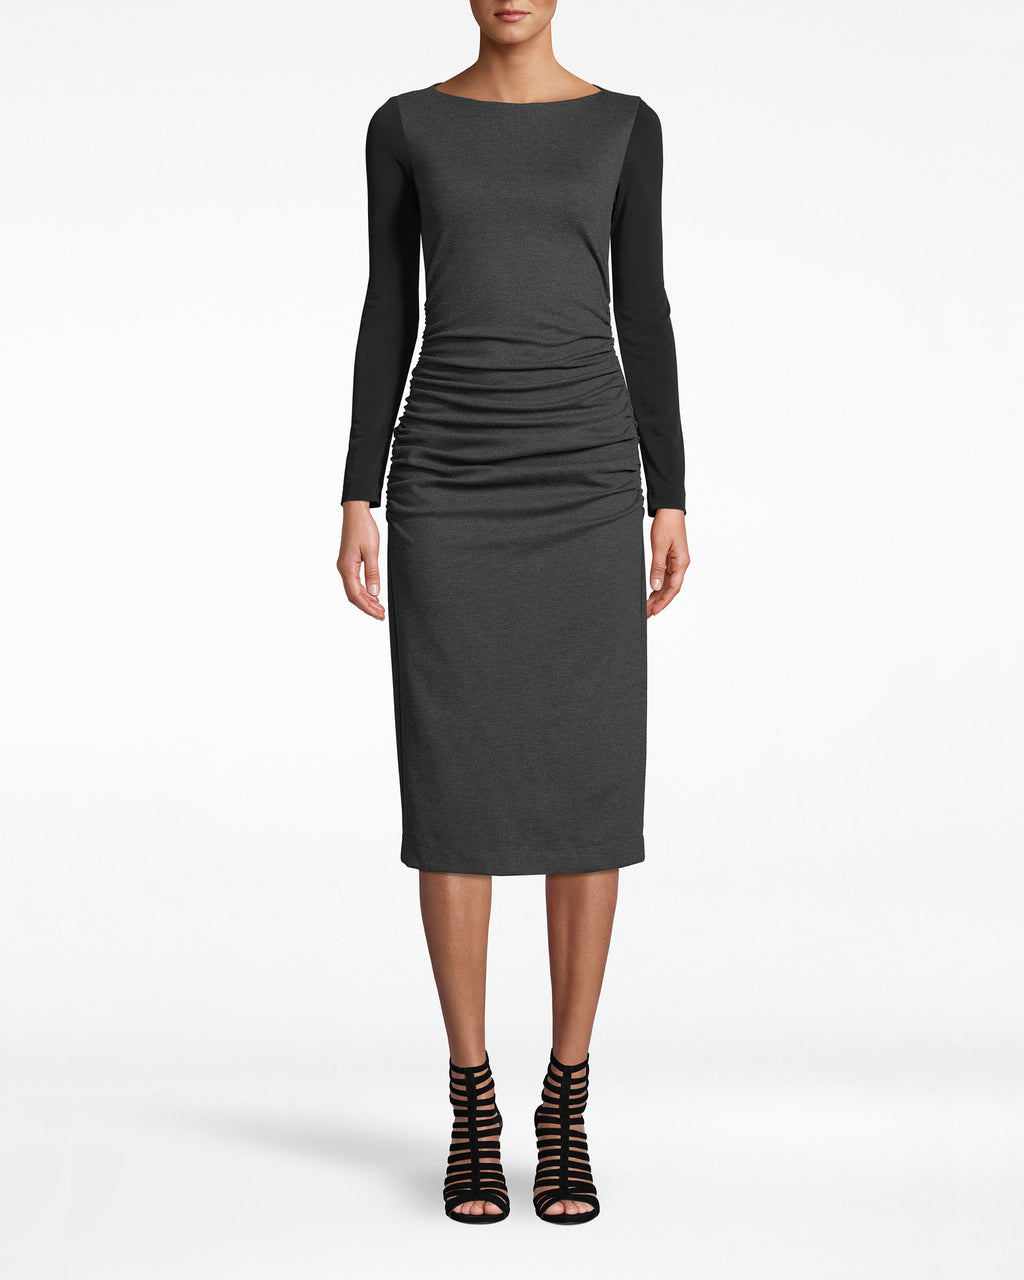 BH10495 - PONTE LONG SLEEVE RUCHED DRESS - dresses - midi - Meeting in session. The soft body of this long sleeve dress makes it ideal for the office. The black sleeves are slim-fitting. Ruching near the waist adds the ideal amount of shape. Exposed back zipp er for closure.